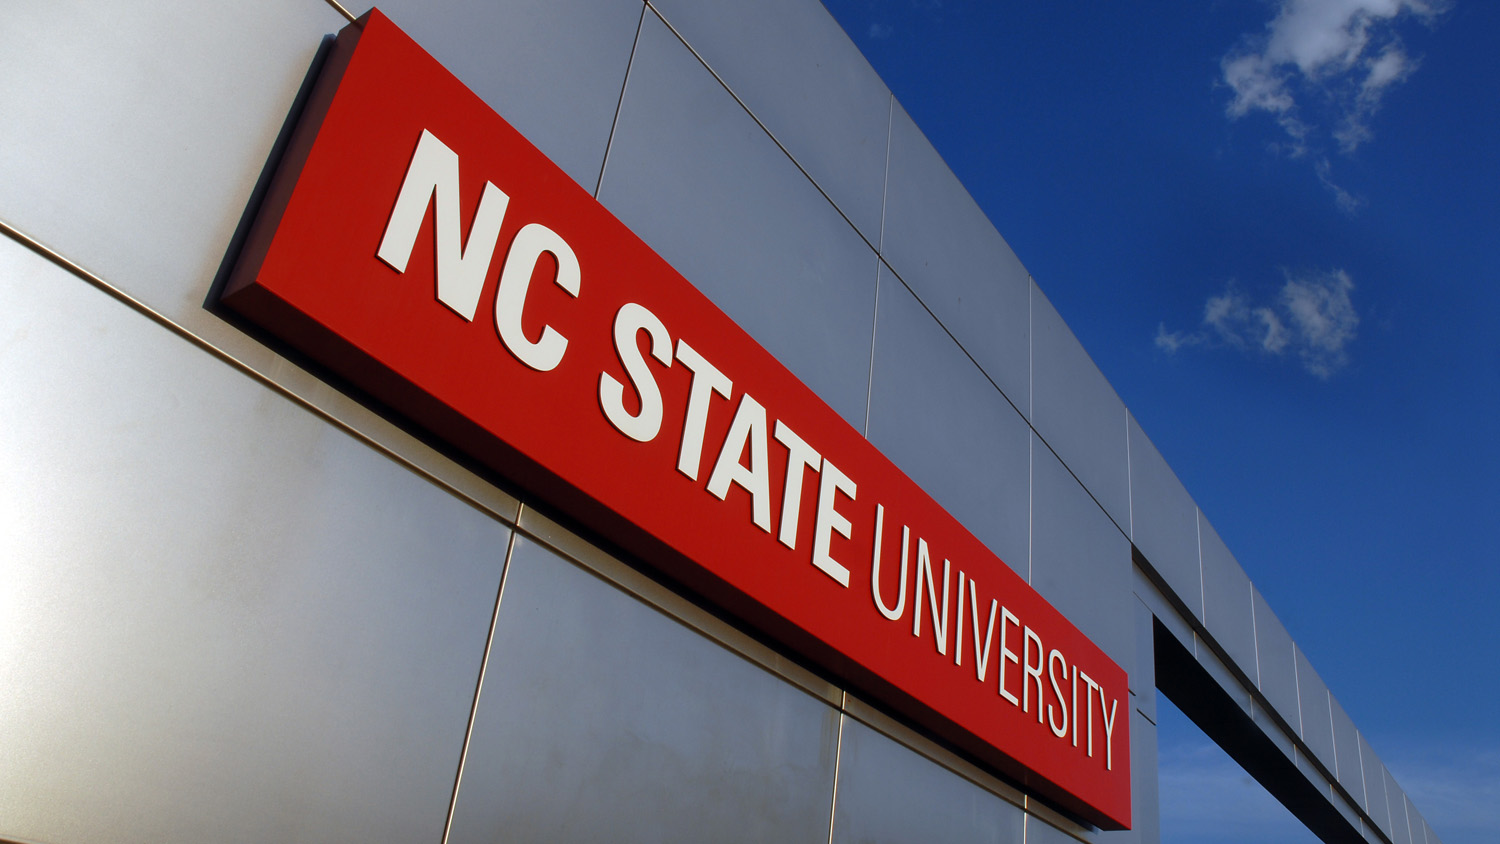 NC State University sign on metal background